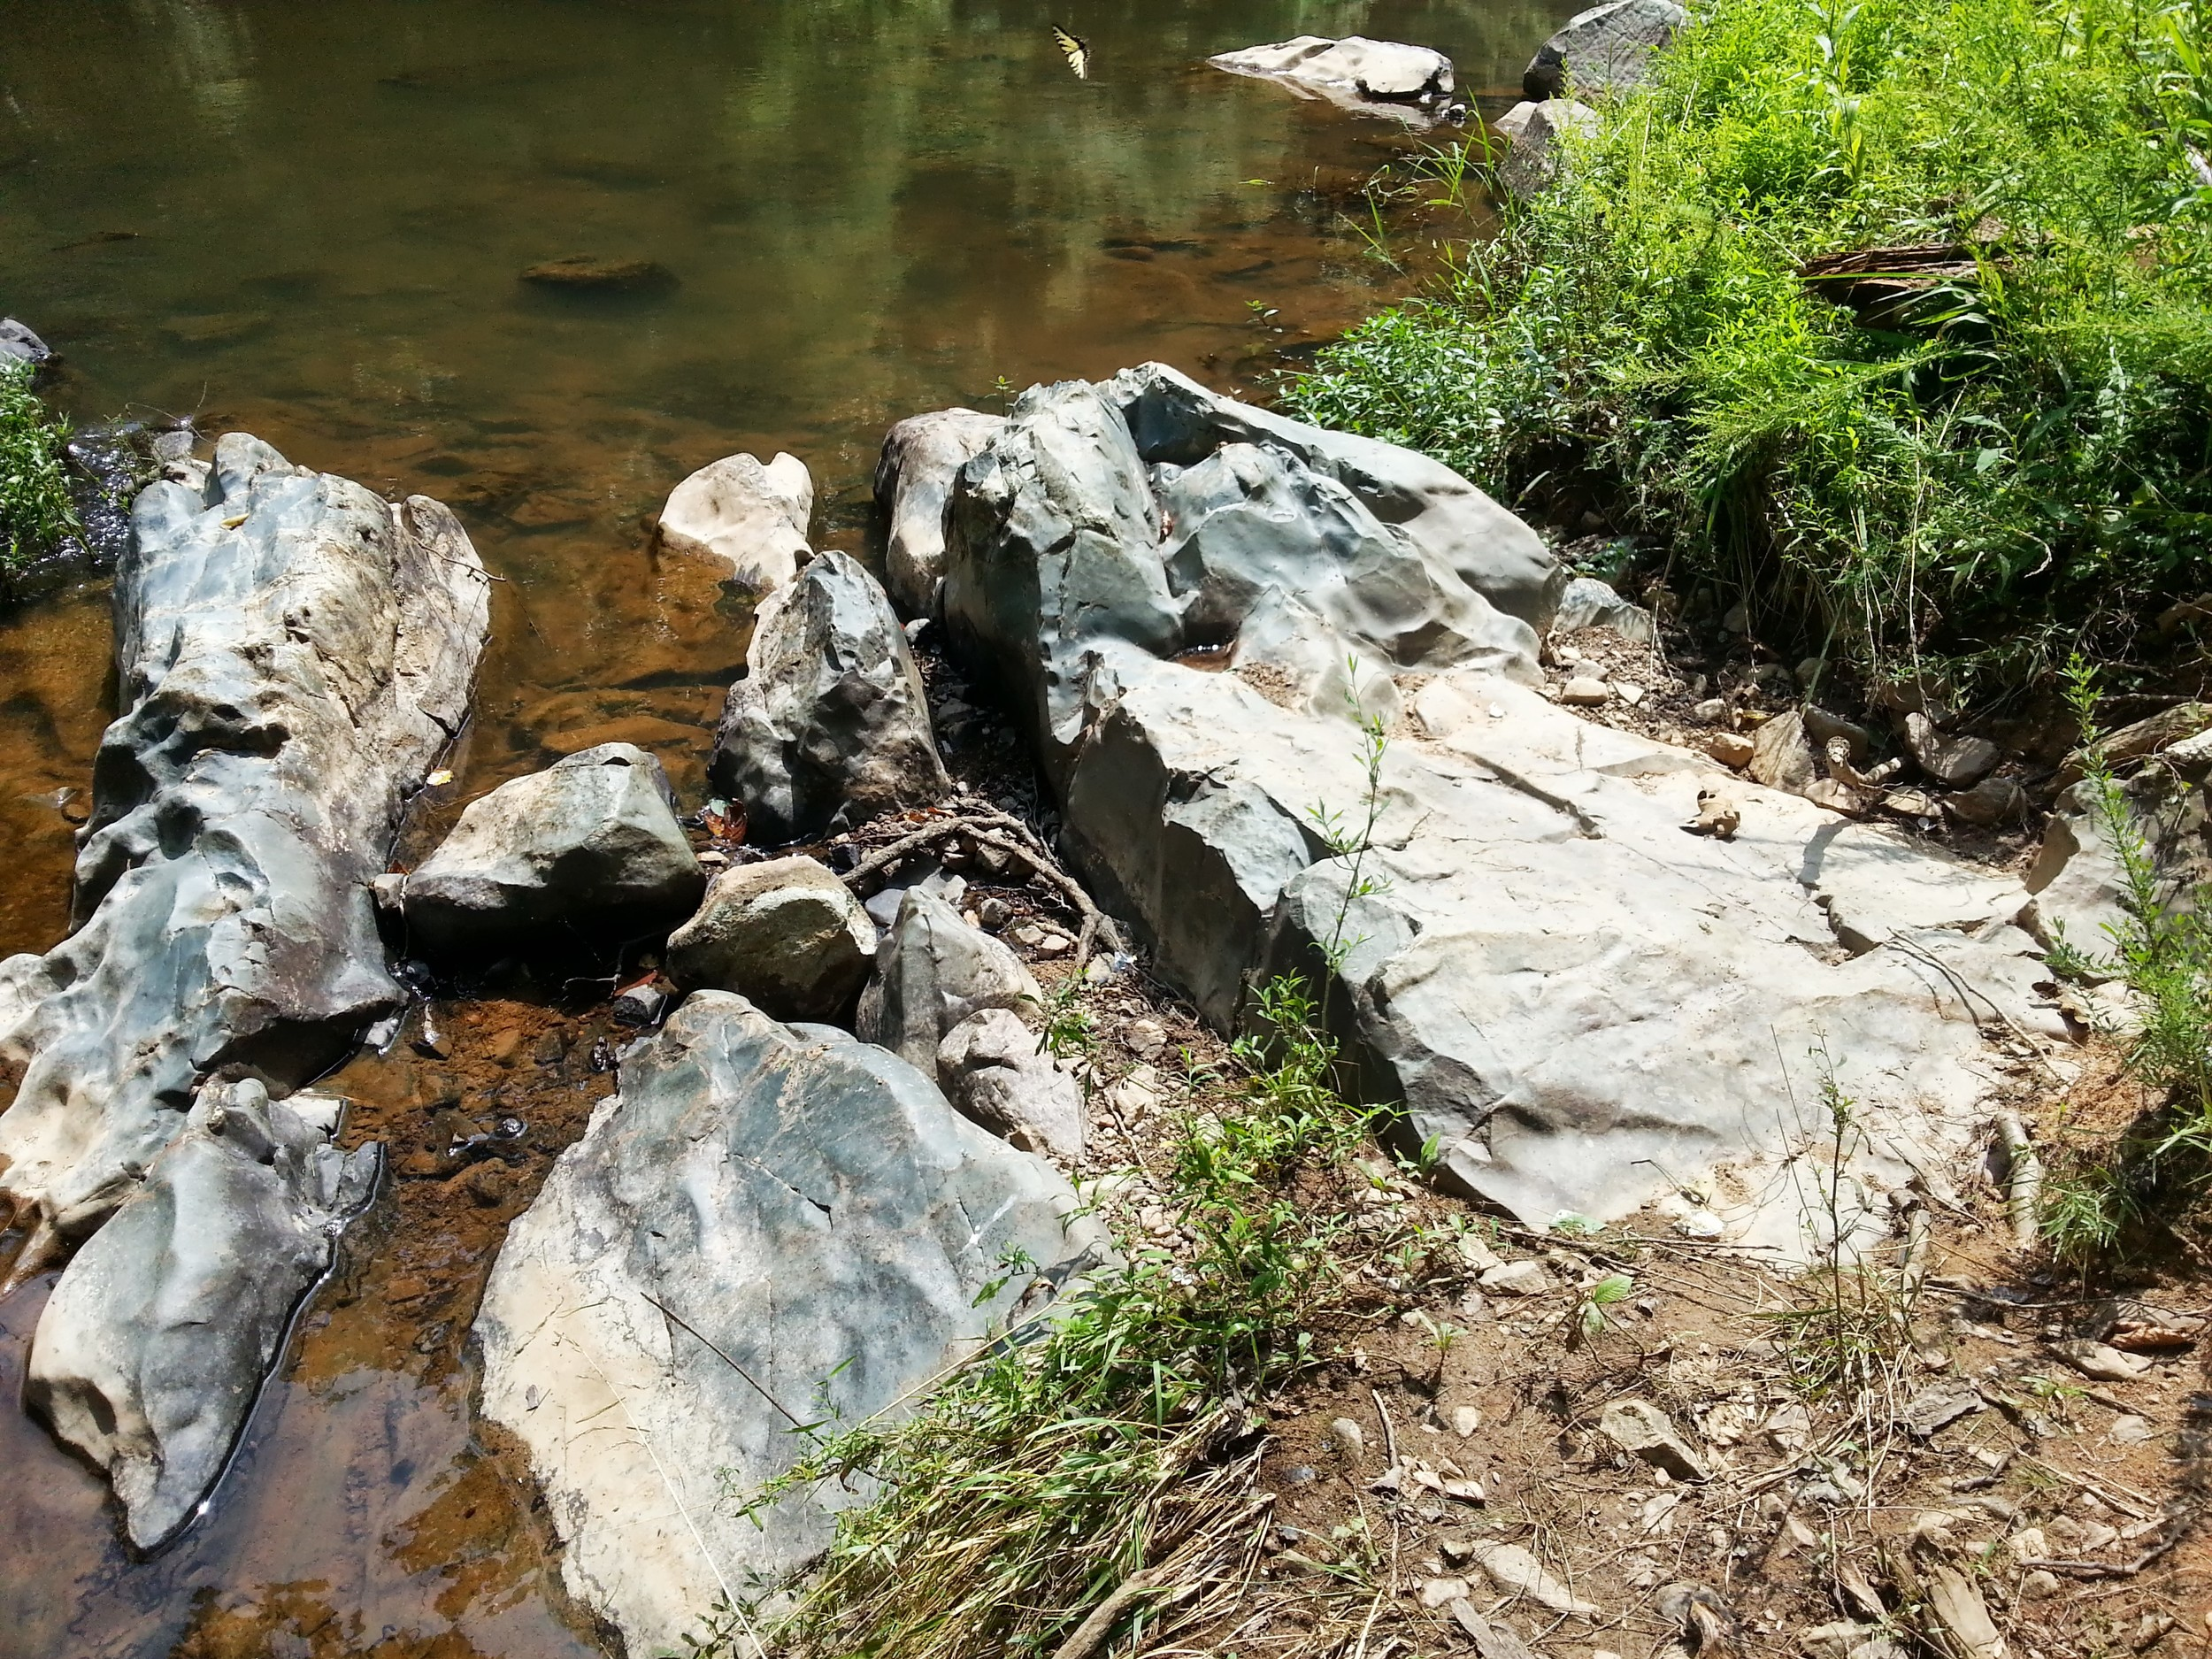 The river and human feet have been slowly weathering these river rocks.